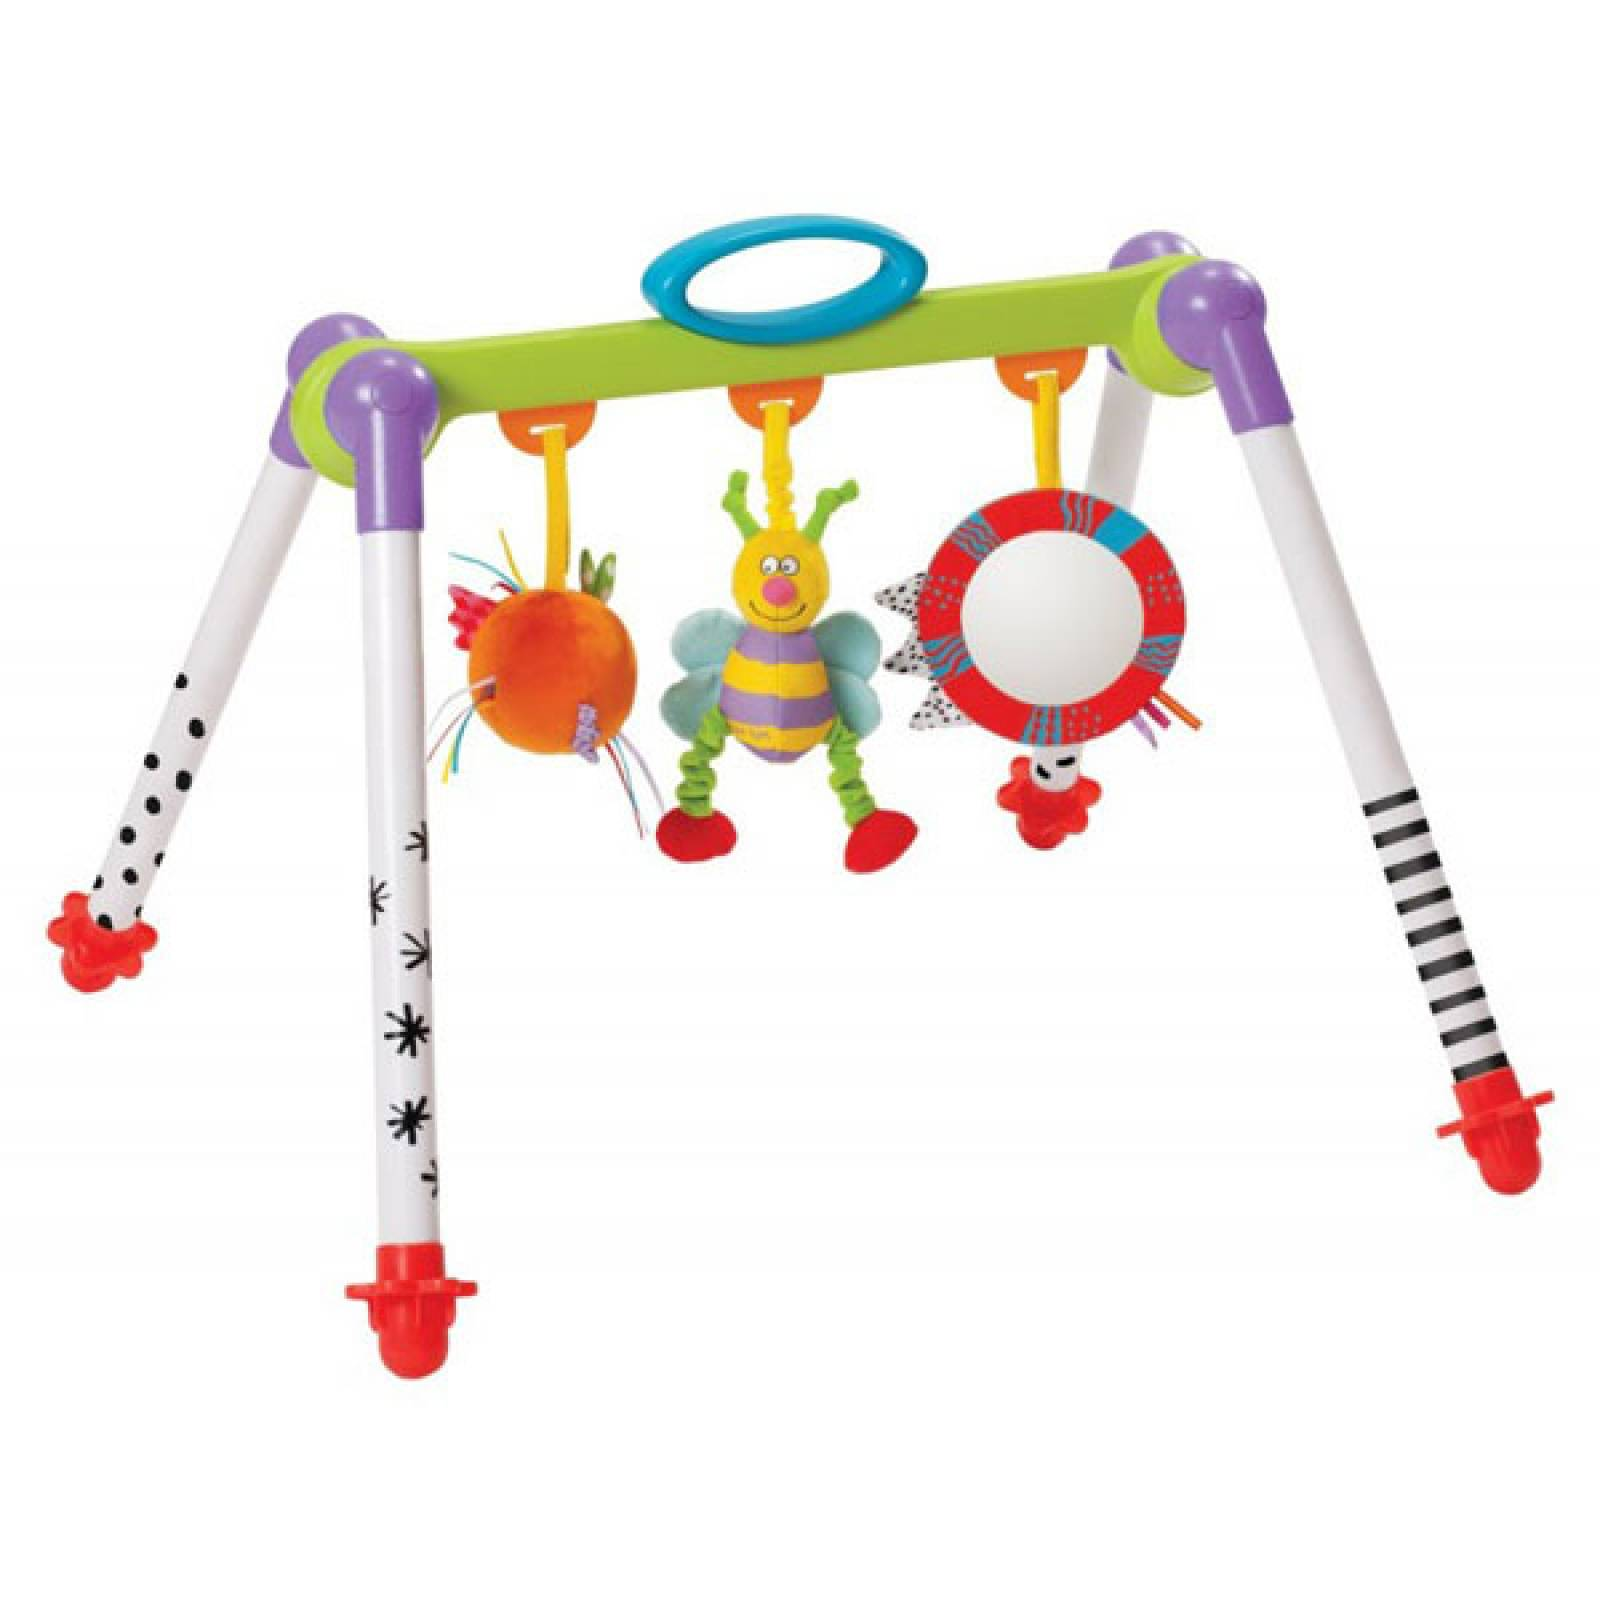 Take To Play Baby Gym By Taf Toys 0+